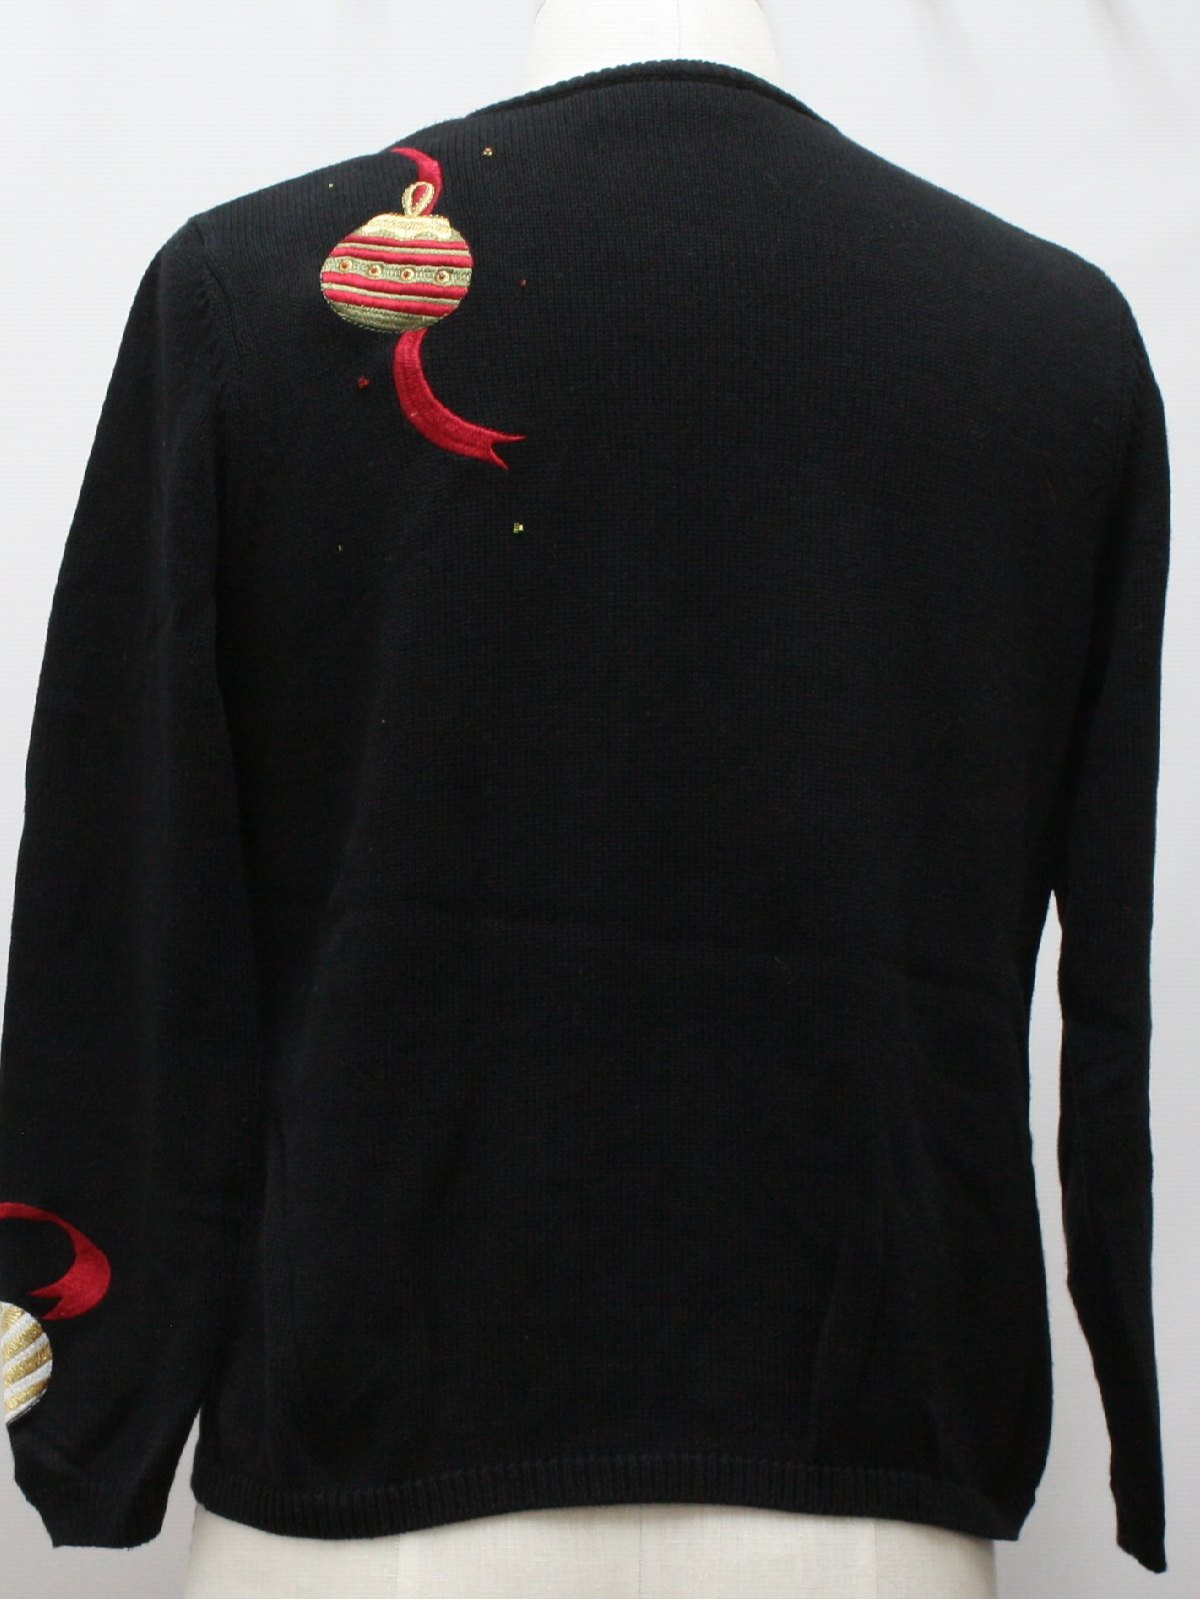 Womens Ugly Christmas Sweater: -Nordstrom- Womens black background ...